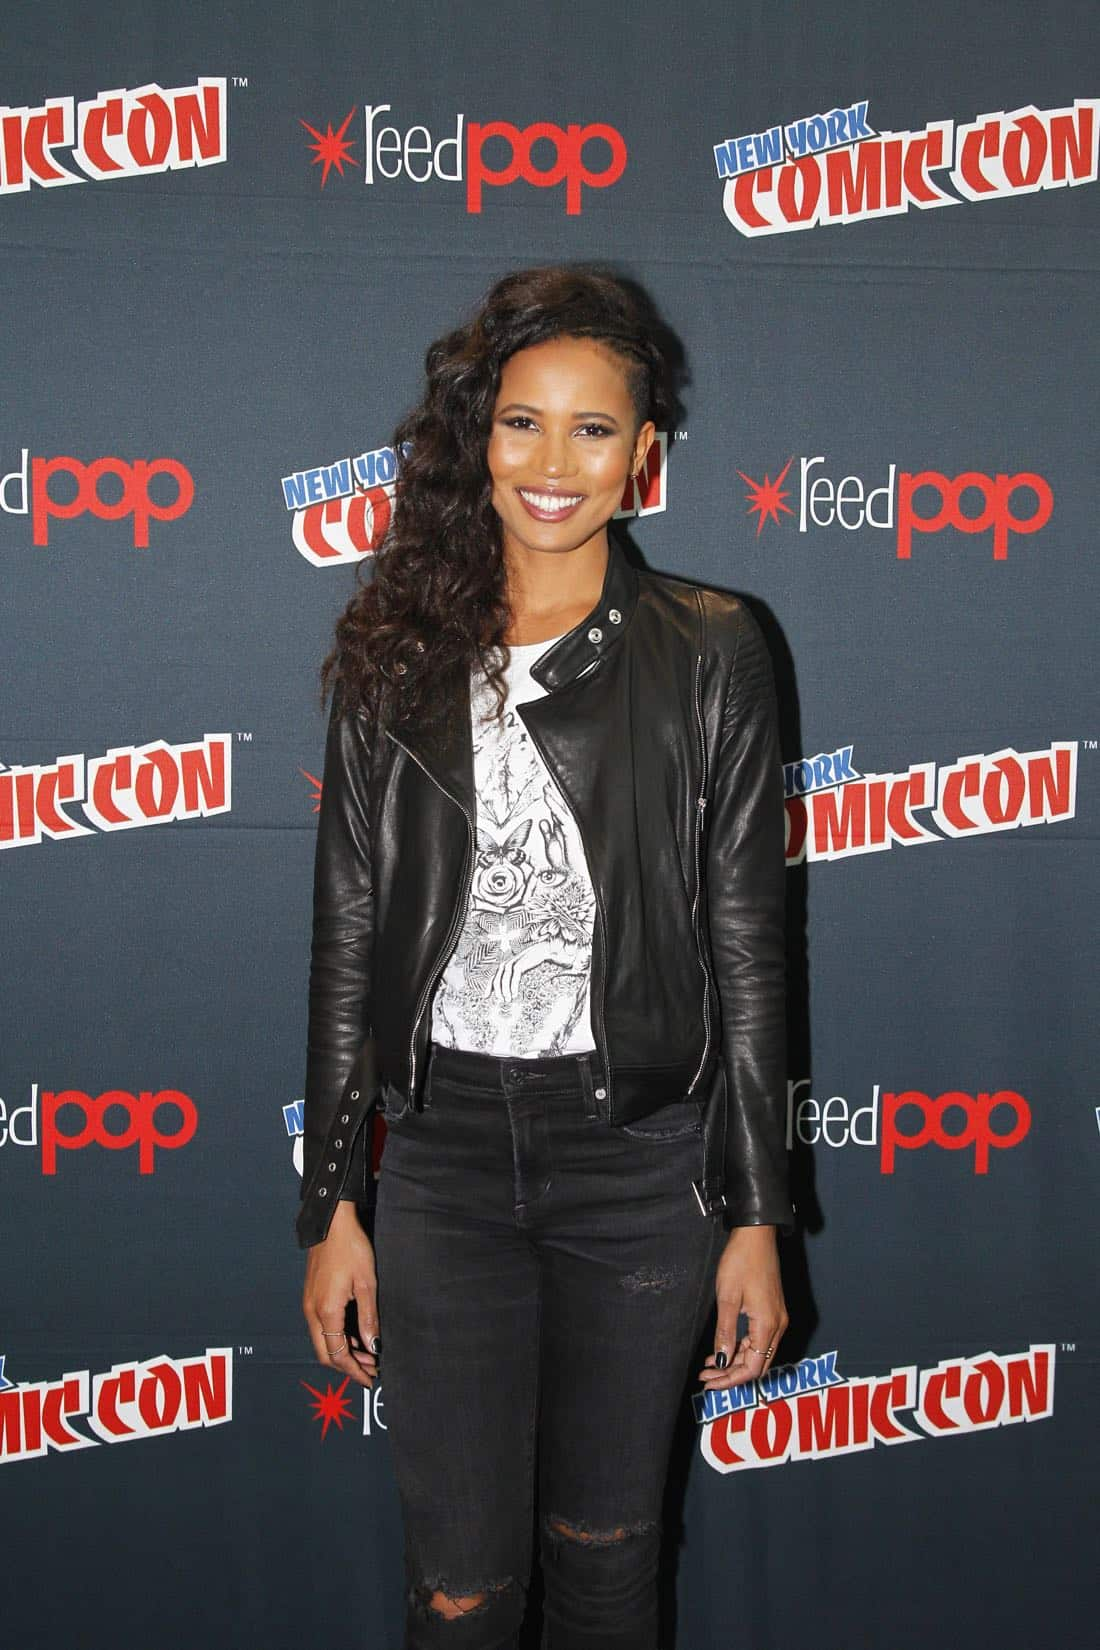 "NY COMIC-CON 2017 - SIREN - Freeform's genre programming was out in full force at this year's New York Comic Con on Saturday, October 7th with executive producers and cast from the hit series ""Shadowhunters,"" ""Beyond,"" and new original series ""Siren."" (Freeform/Lou Rocco) FOLA EVANS-AKINGBOLA"